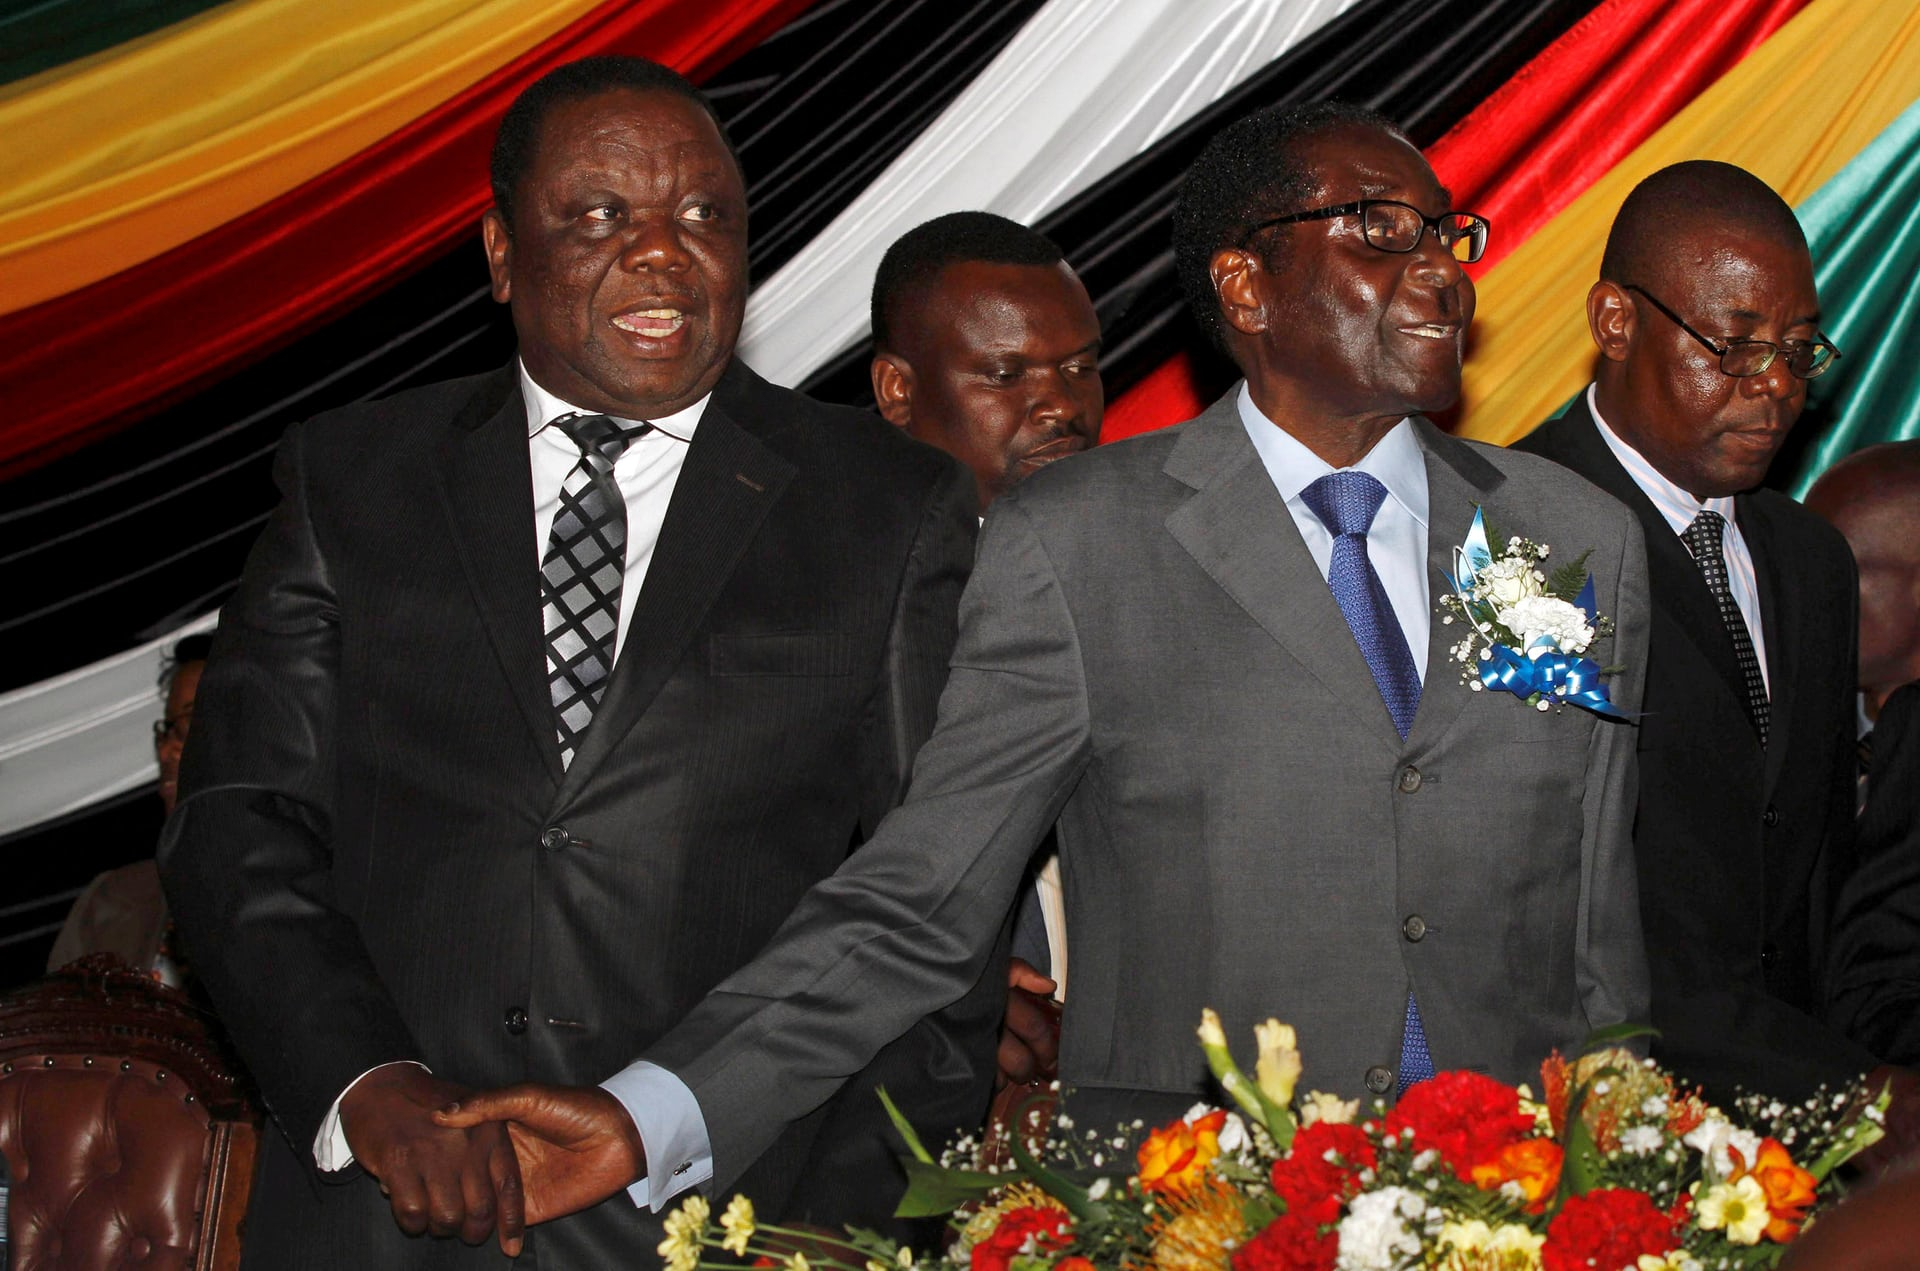 Tsvangirai, left, and Robert Mugabe at a conference reviewing a draft constitution in Harare in October 2012. Photograph: Philimon Bulawayo/Reuters